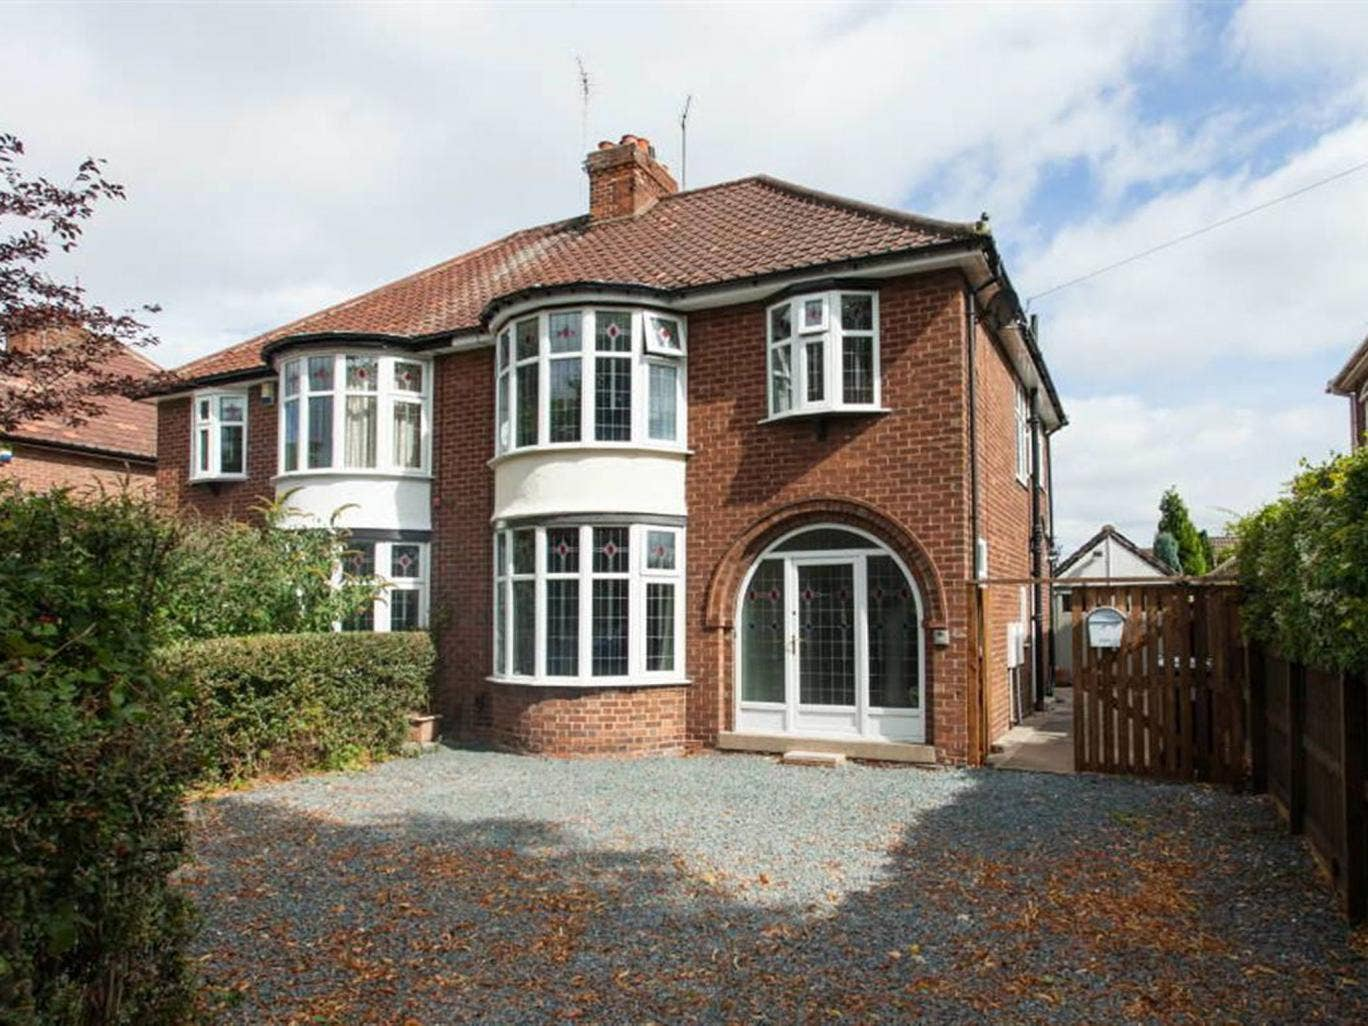 A 3 bedroom semi detached house for sale in Beckfield Lane, York, on the market for £250,000 with Stephensons